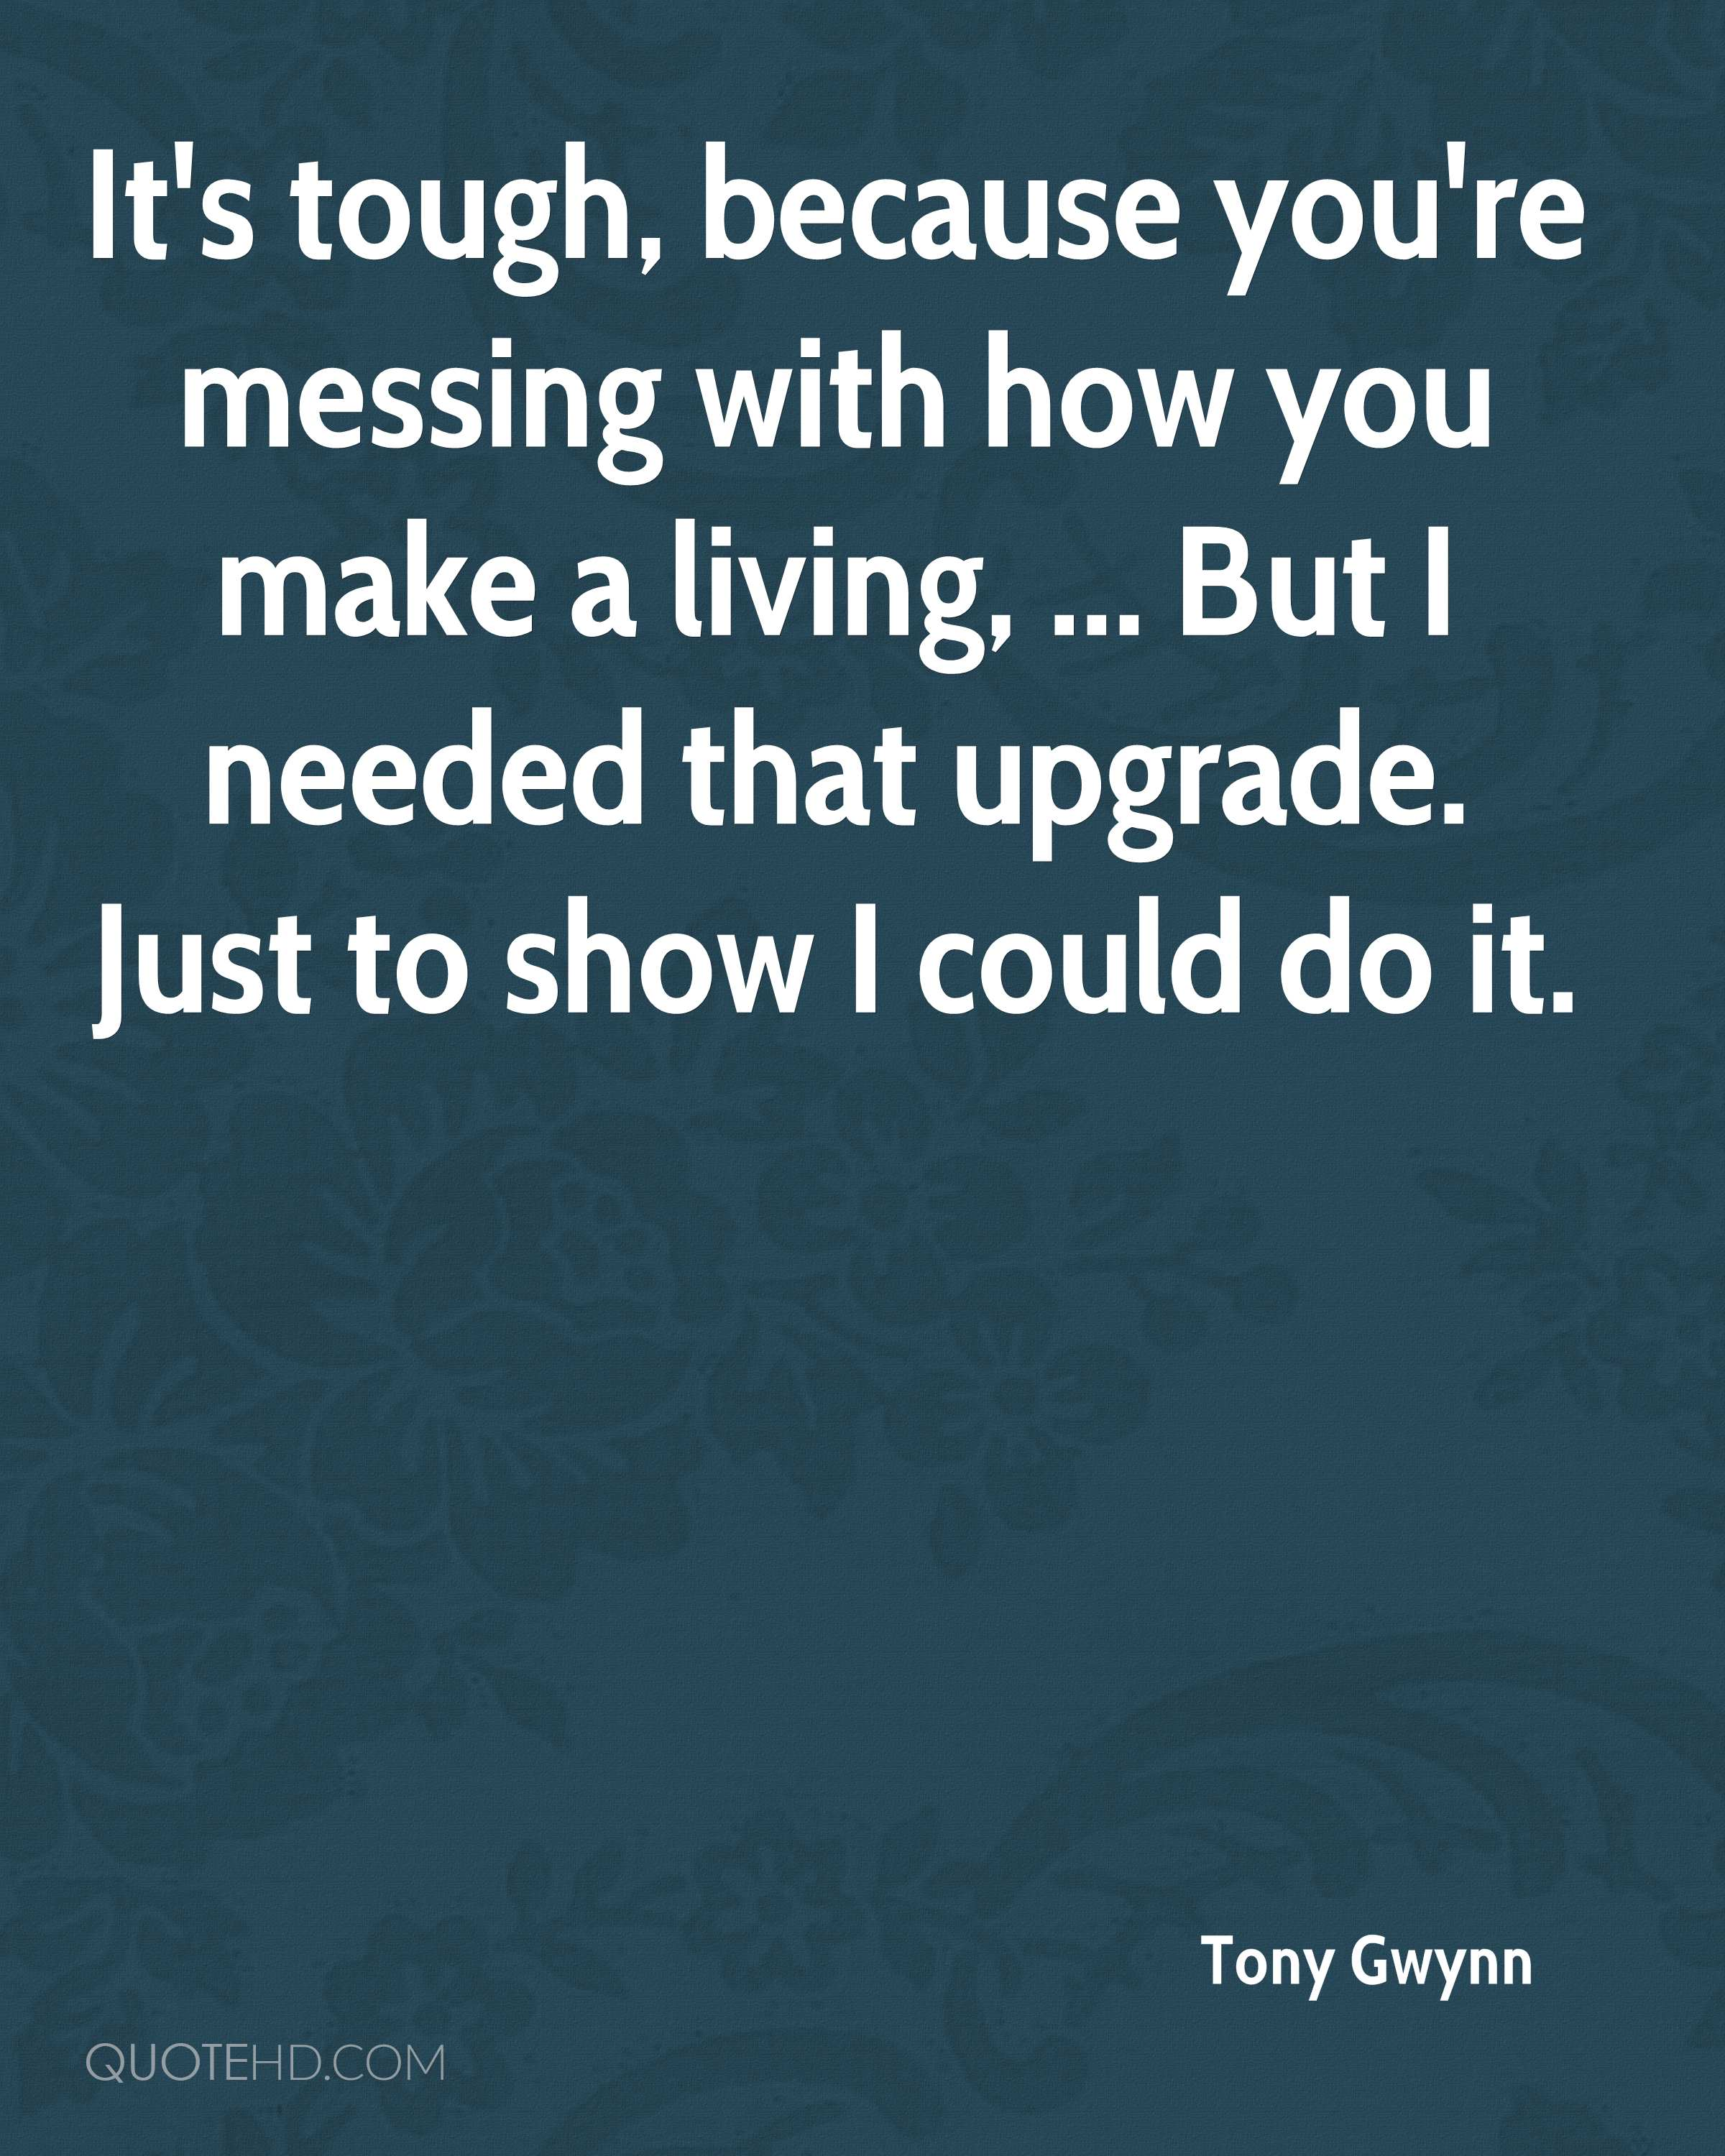 It's tough, because you're messing with how you make a living, ... But I needed that upgrade. Just to show I could do it.